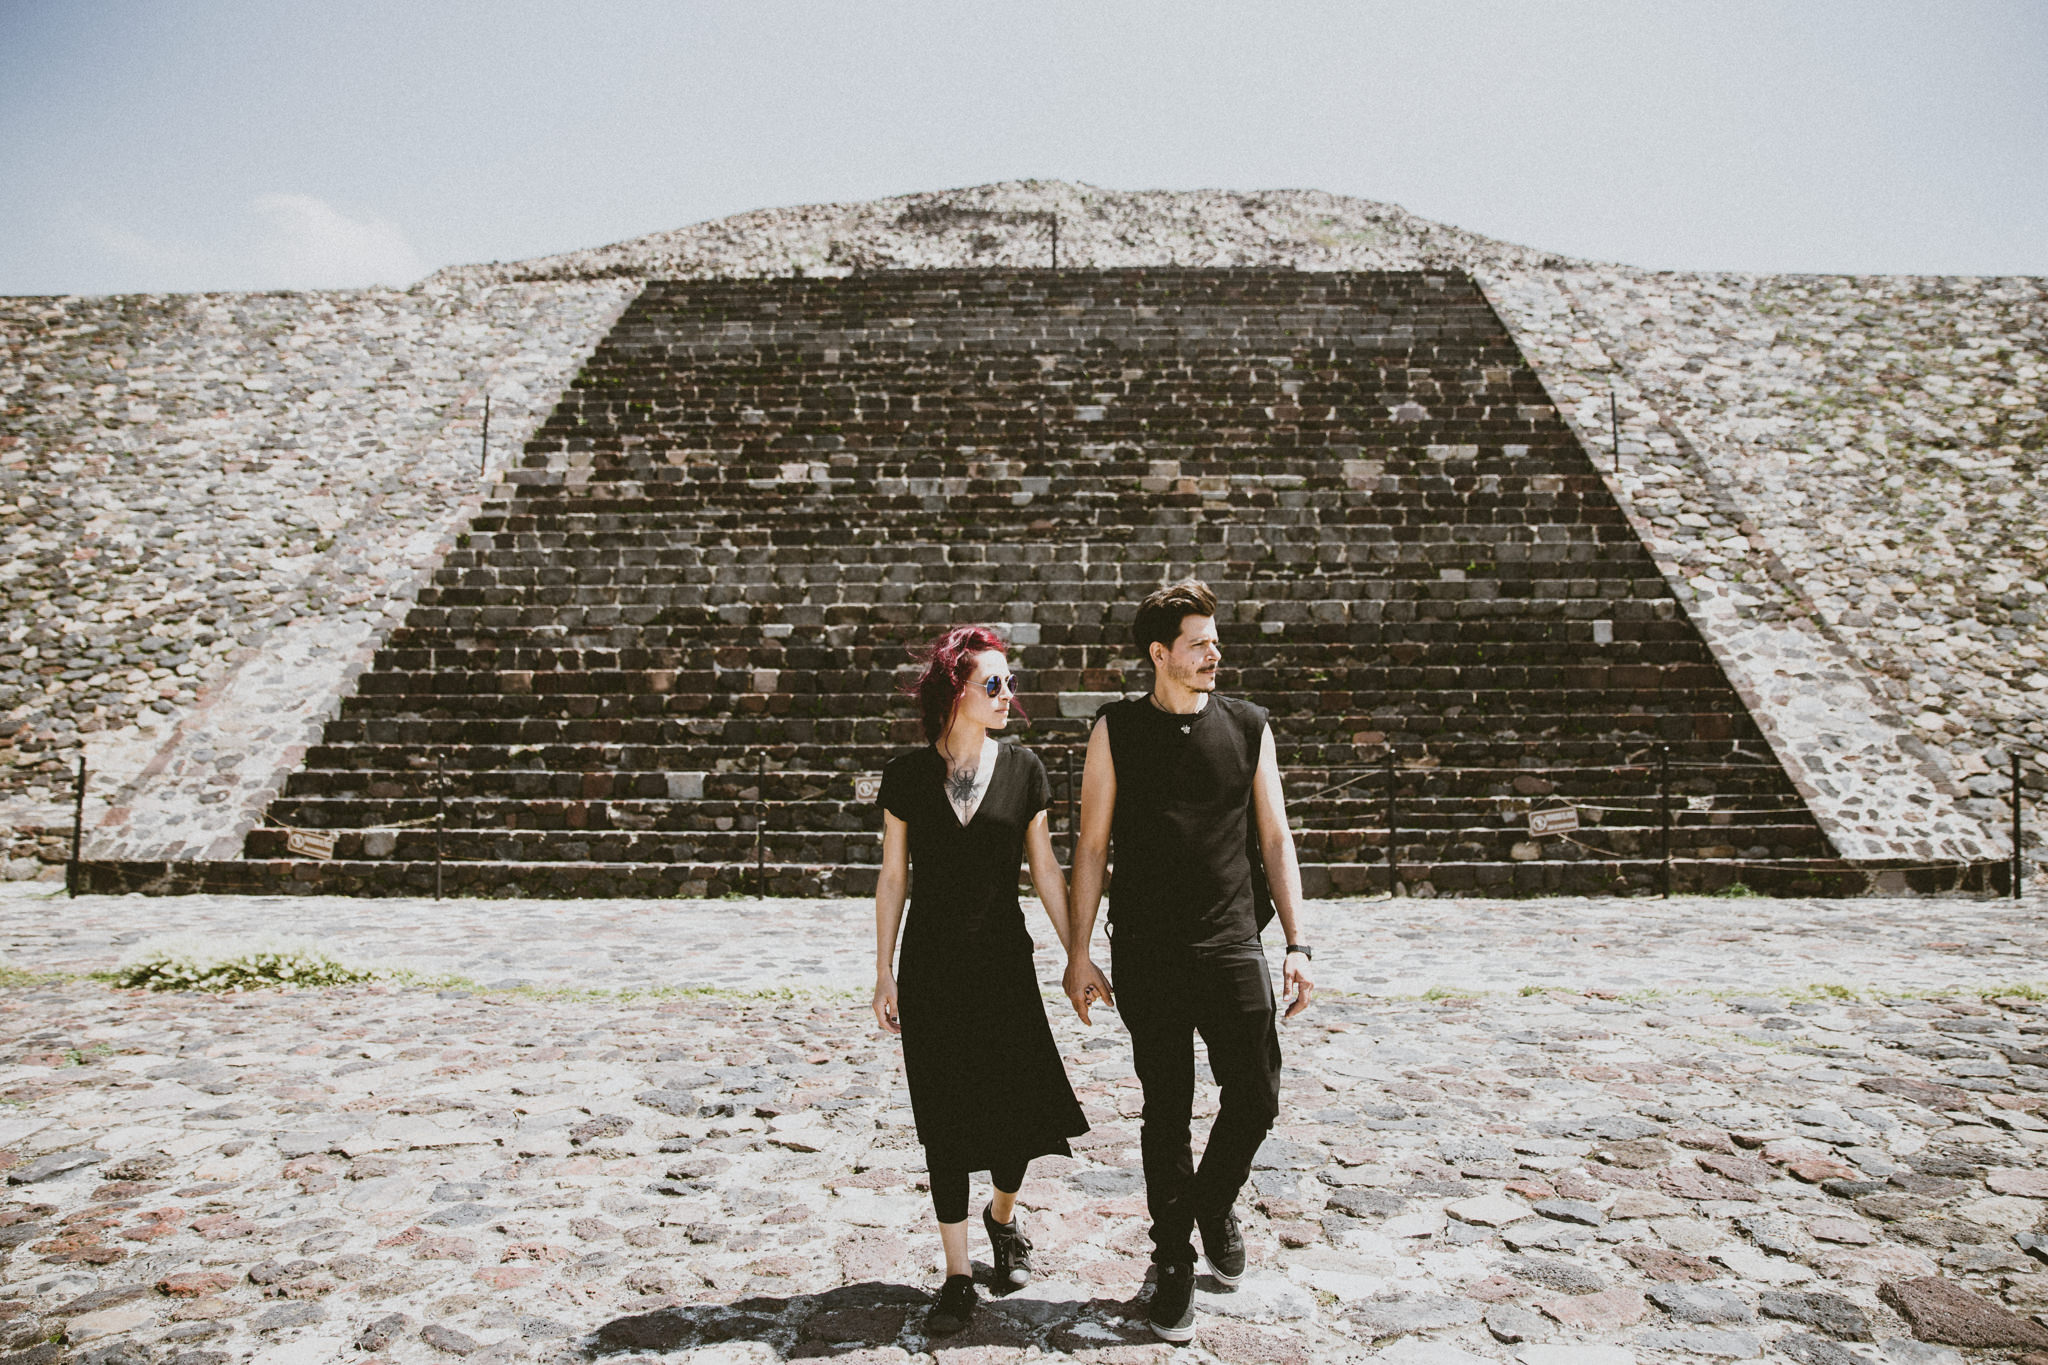 couple in teotihuacan mexico walking on pyramid of the moon